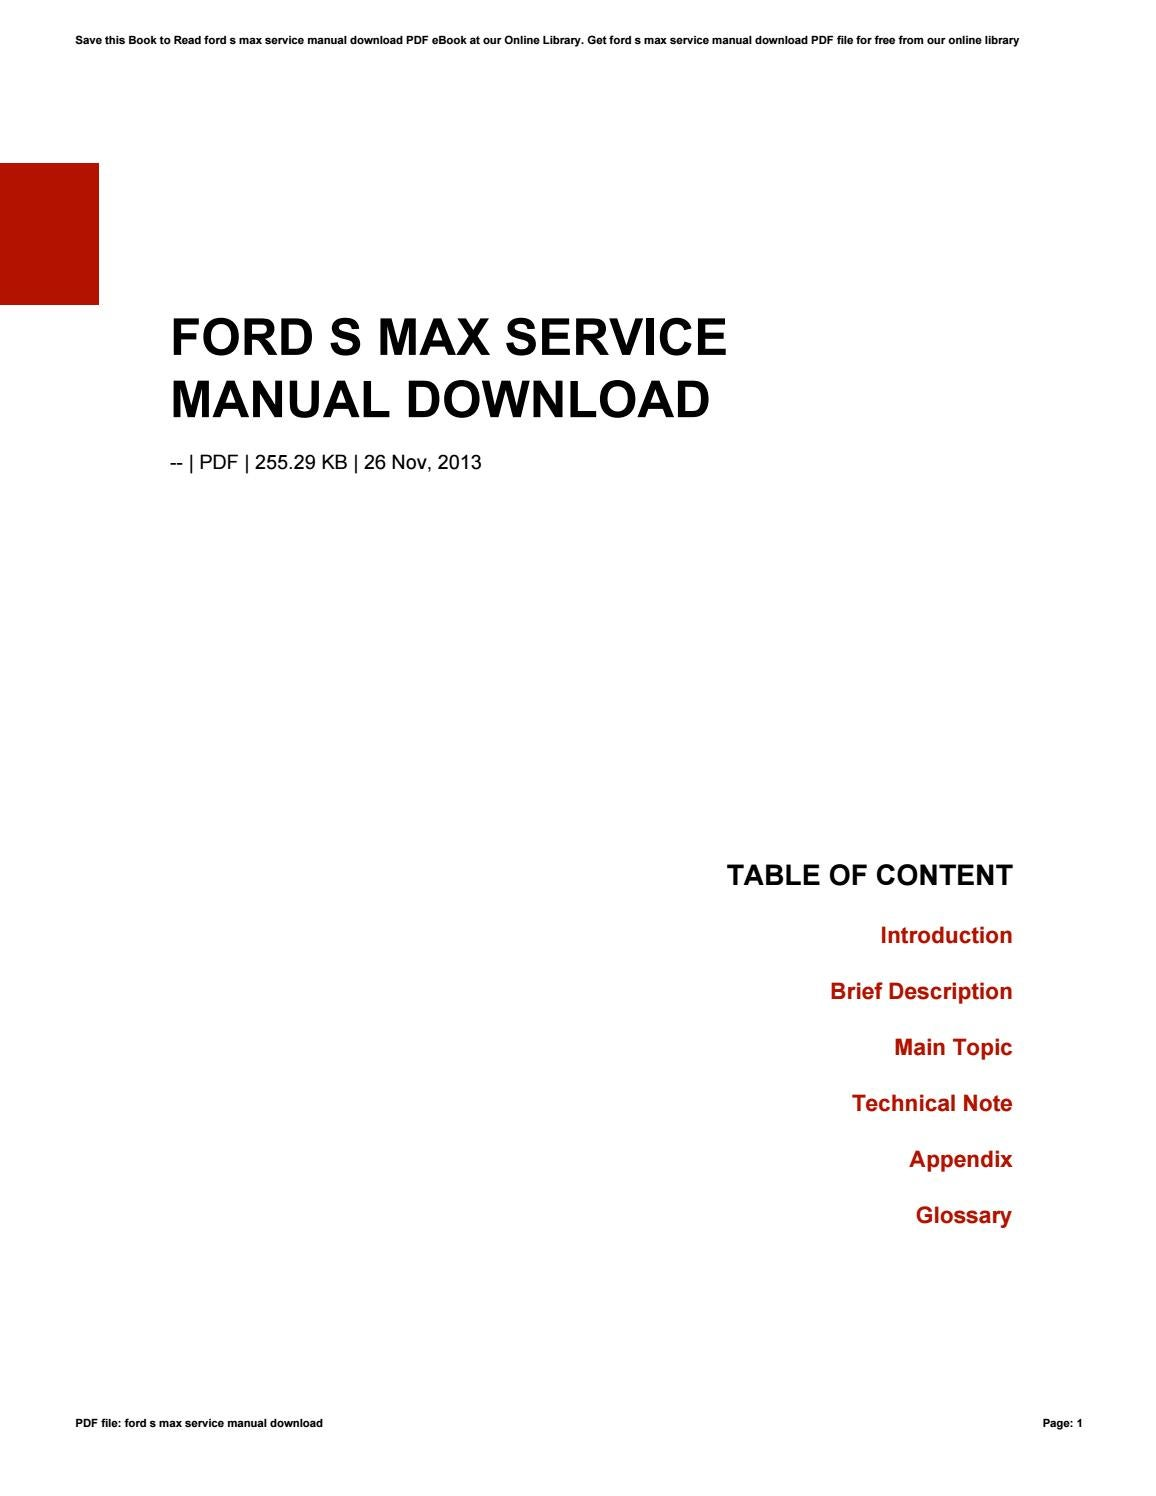 Ford s max service manual download by inclusiveprogress74